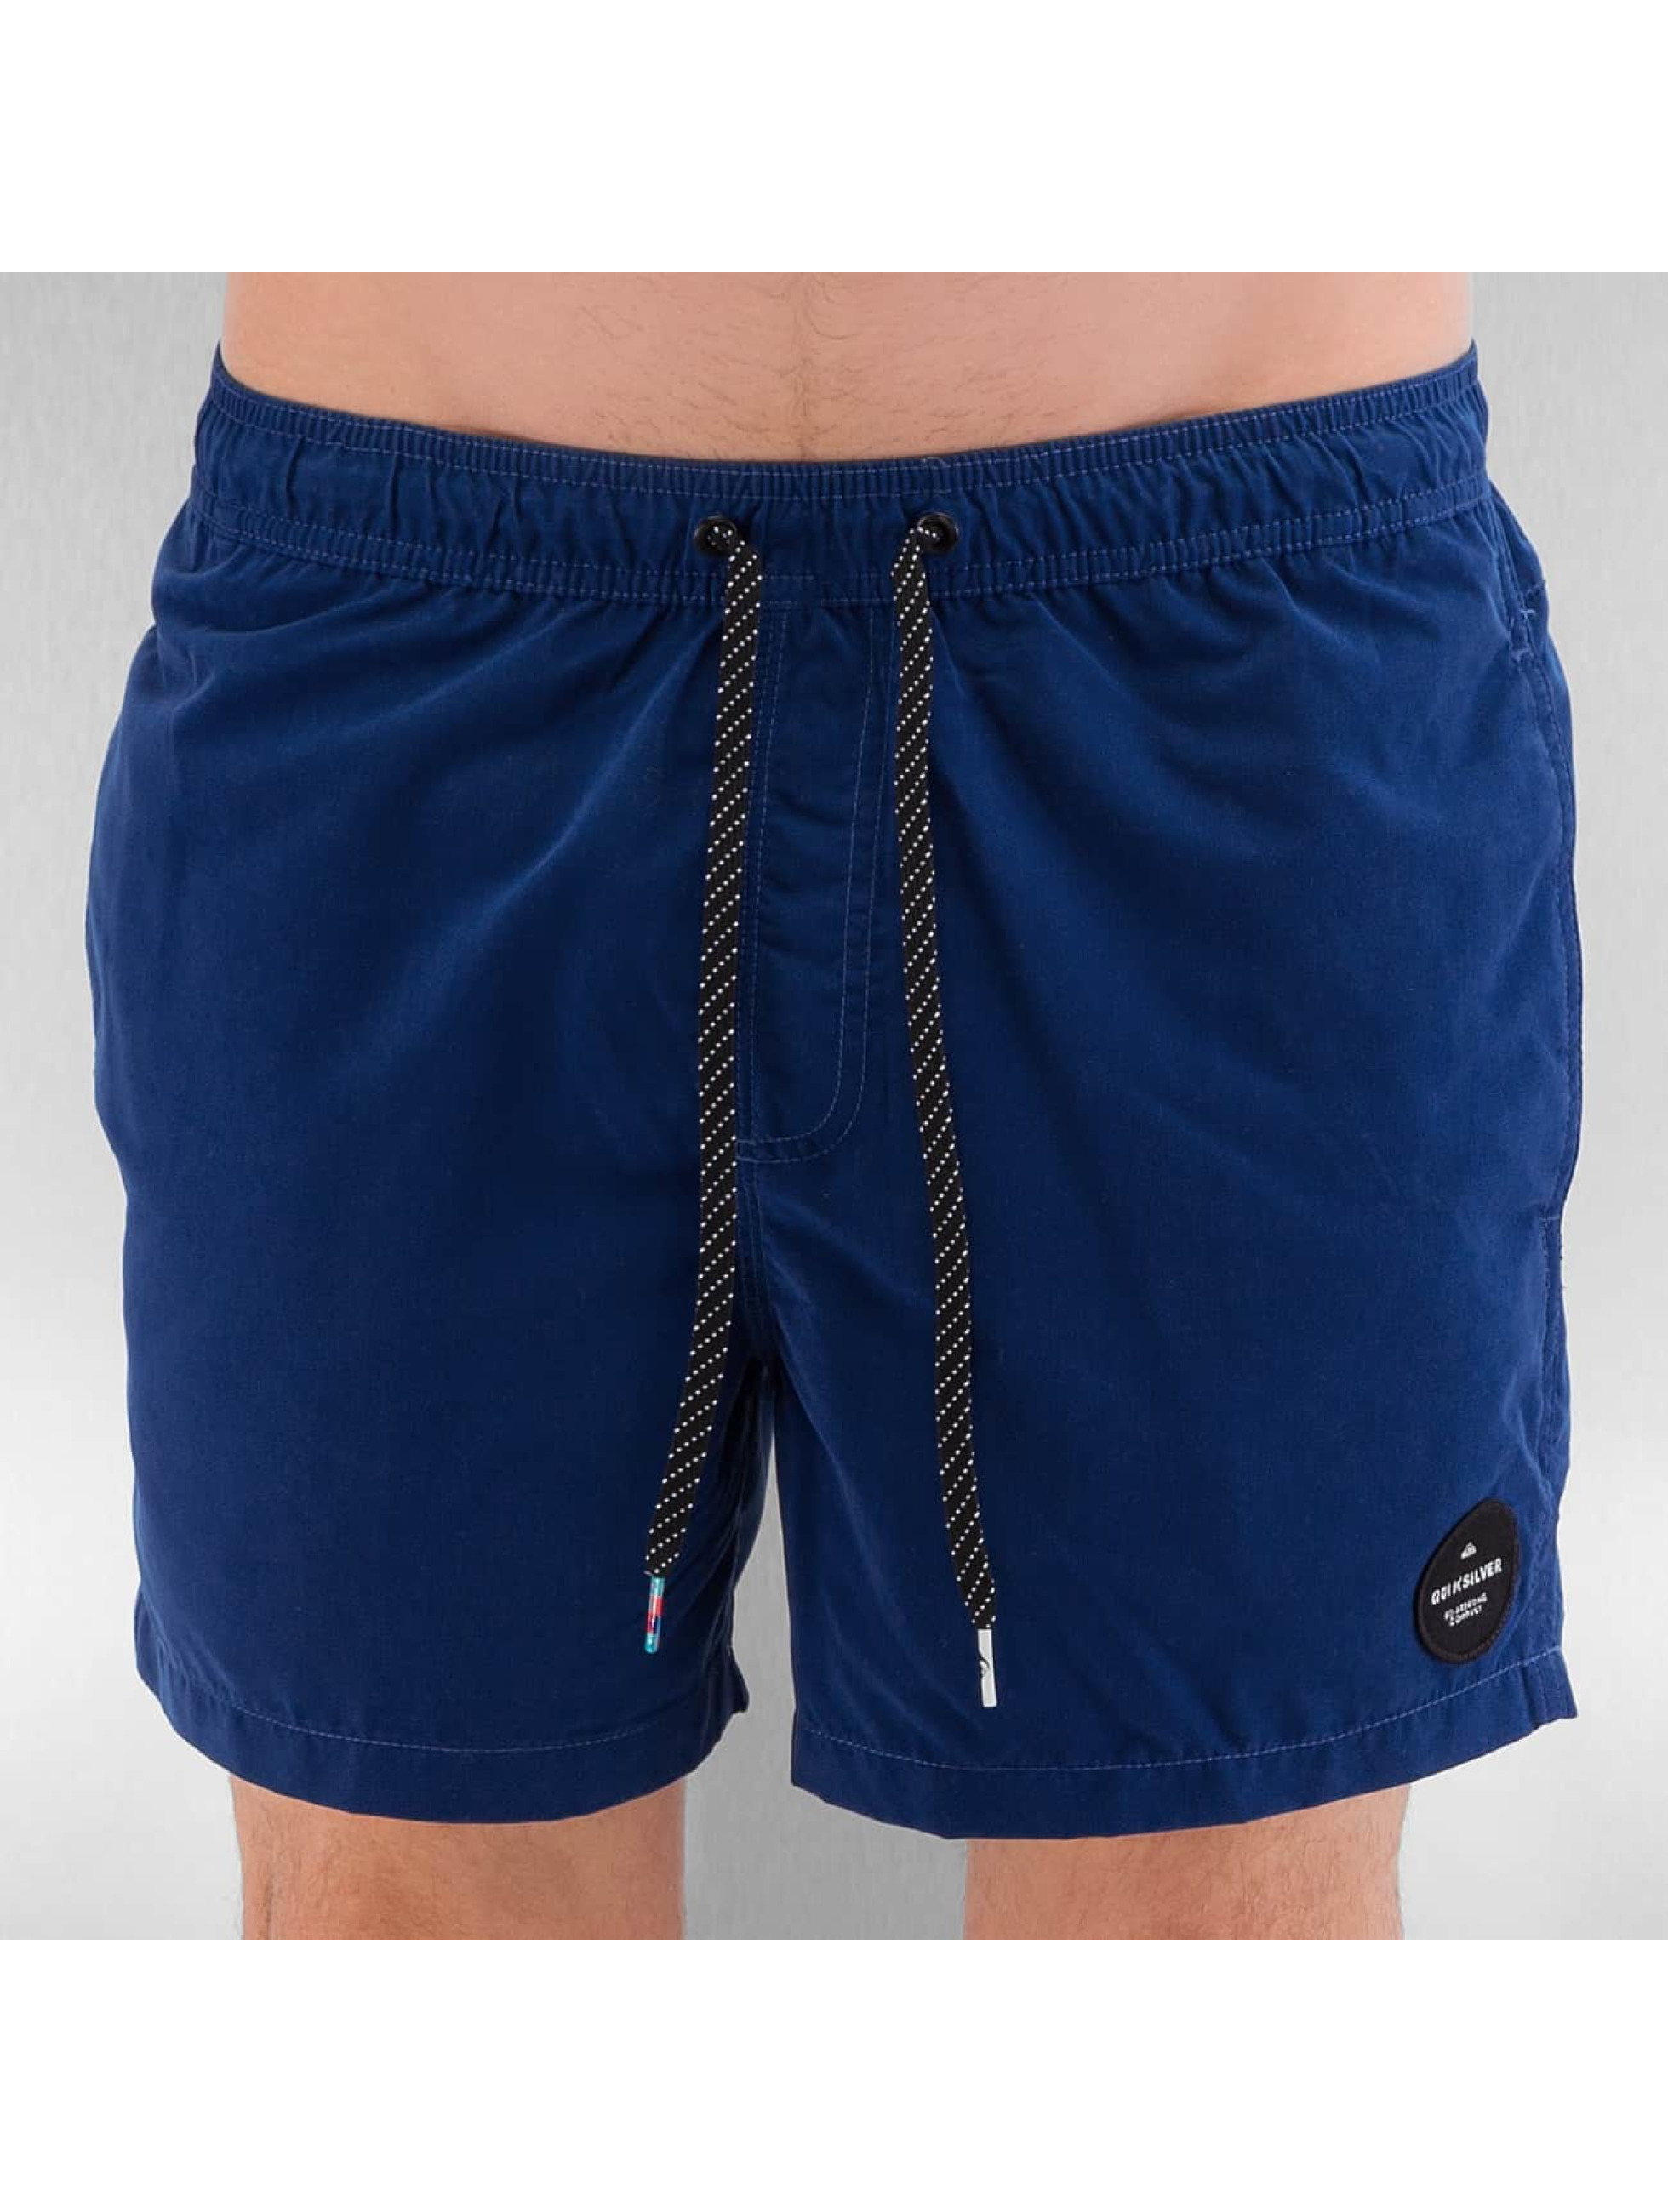 Quiksilver Männer Badeshorts Everyday Solid Volley 15 in blau